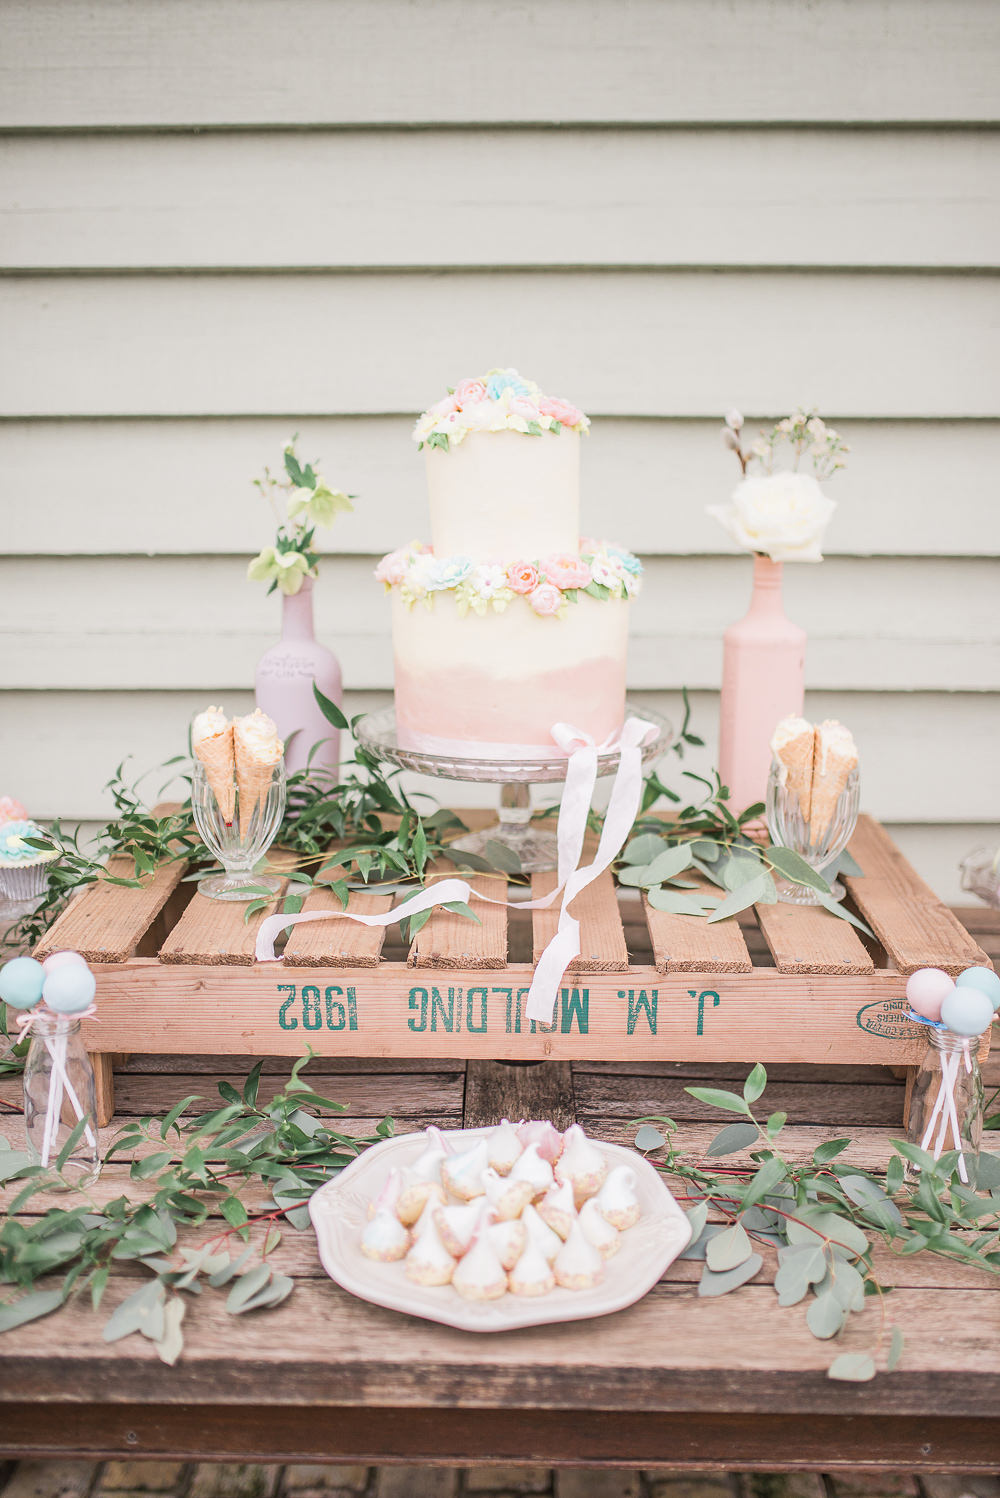 Cake Dessert Table Bar Station Rustic Pretty Springtime Bridal Shower Ideas Hen Party Laura Jane Photography